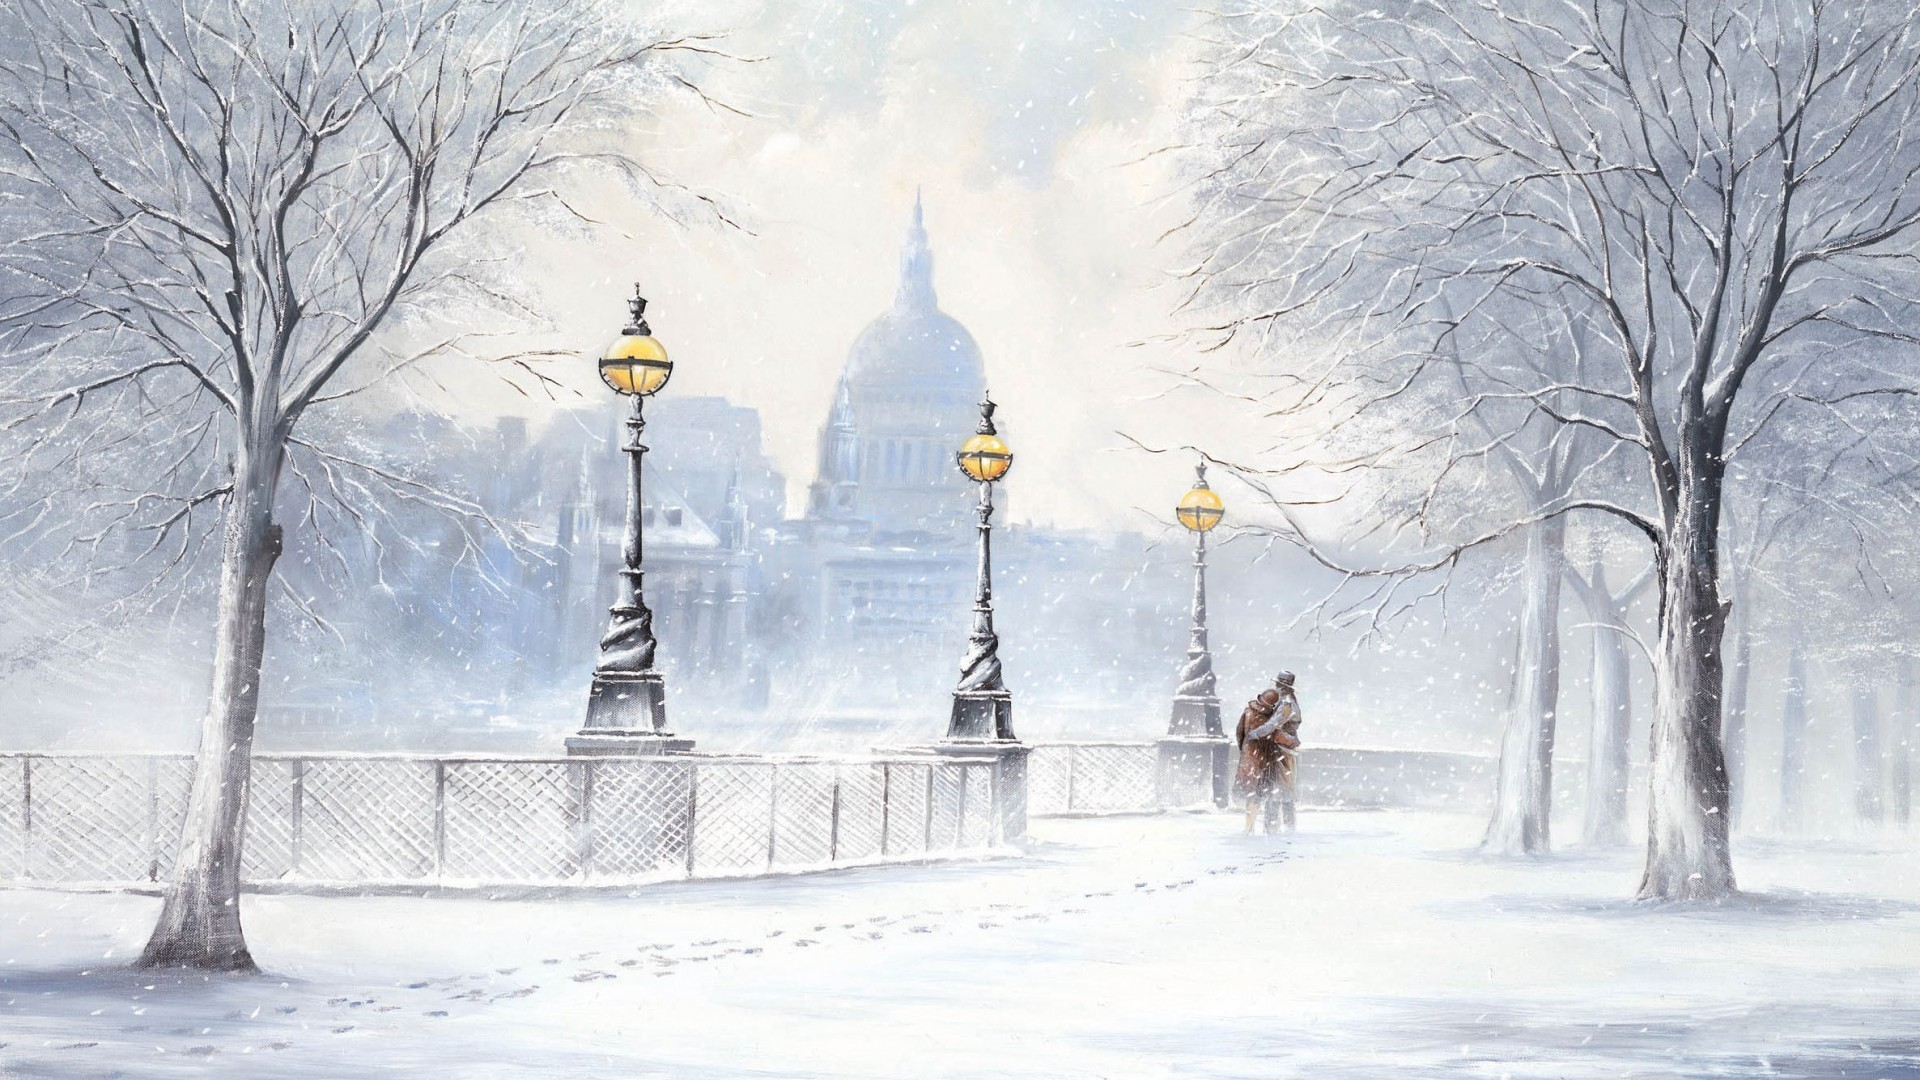 Wonderful Wallpaper Macbook Snow - 592588-snow-winter-wallpaper-1920x1080-macbook  Perfect Image Reference_715830.jpg